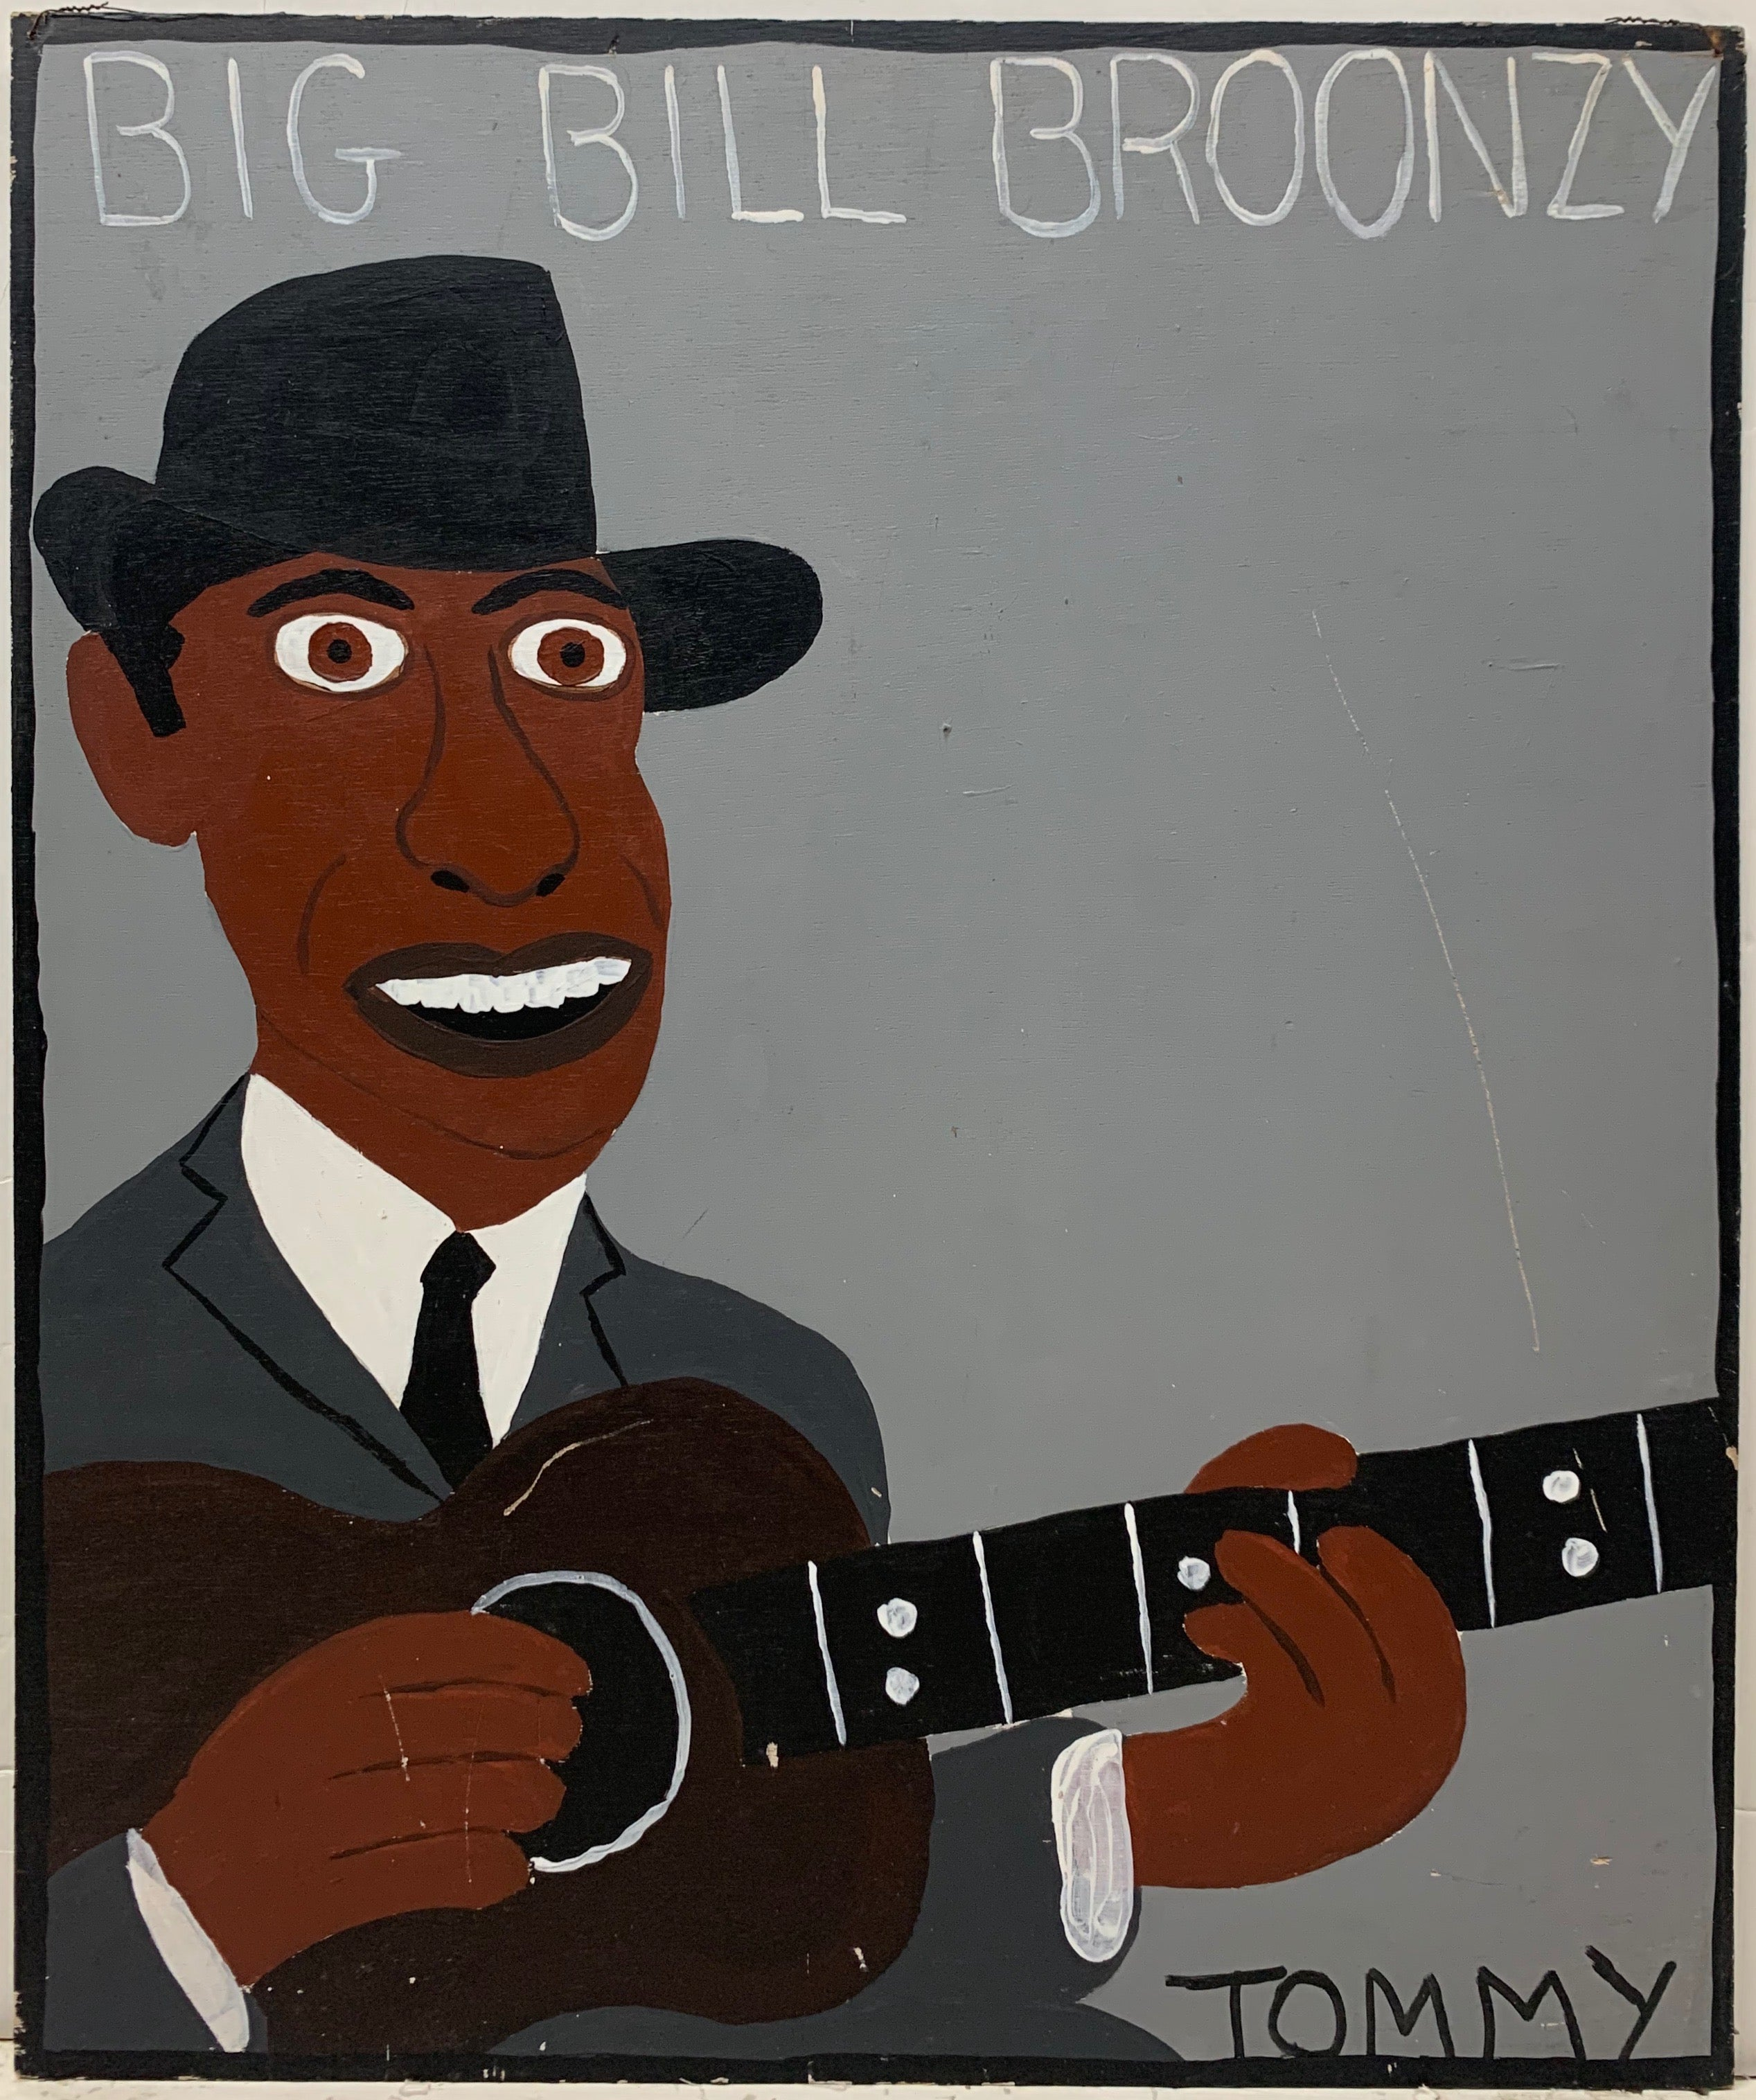 A Tommy Cheng portrait of Big Bill Broonzy with a black guitar, black hat, and gray suit.